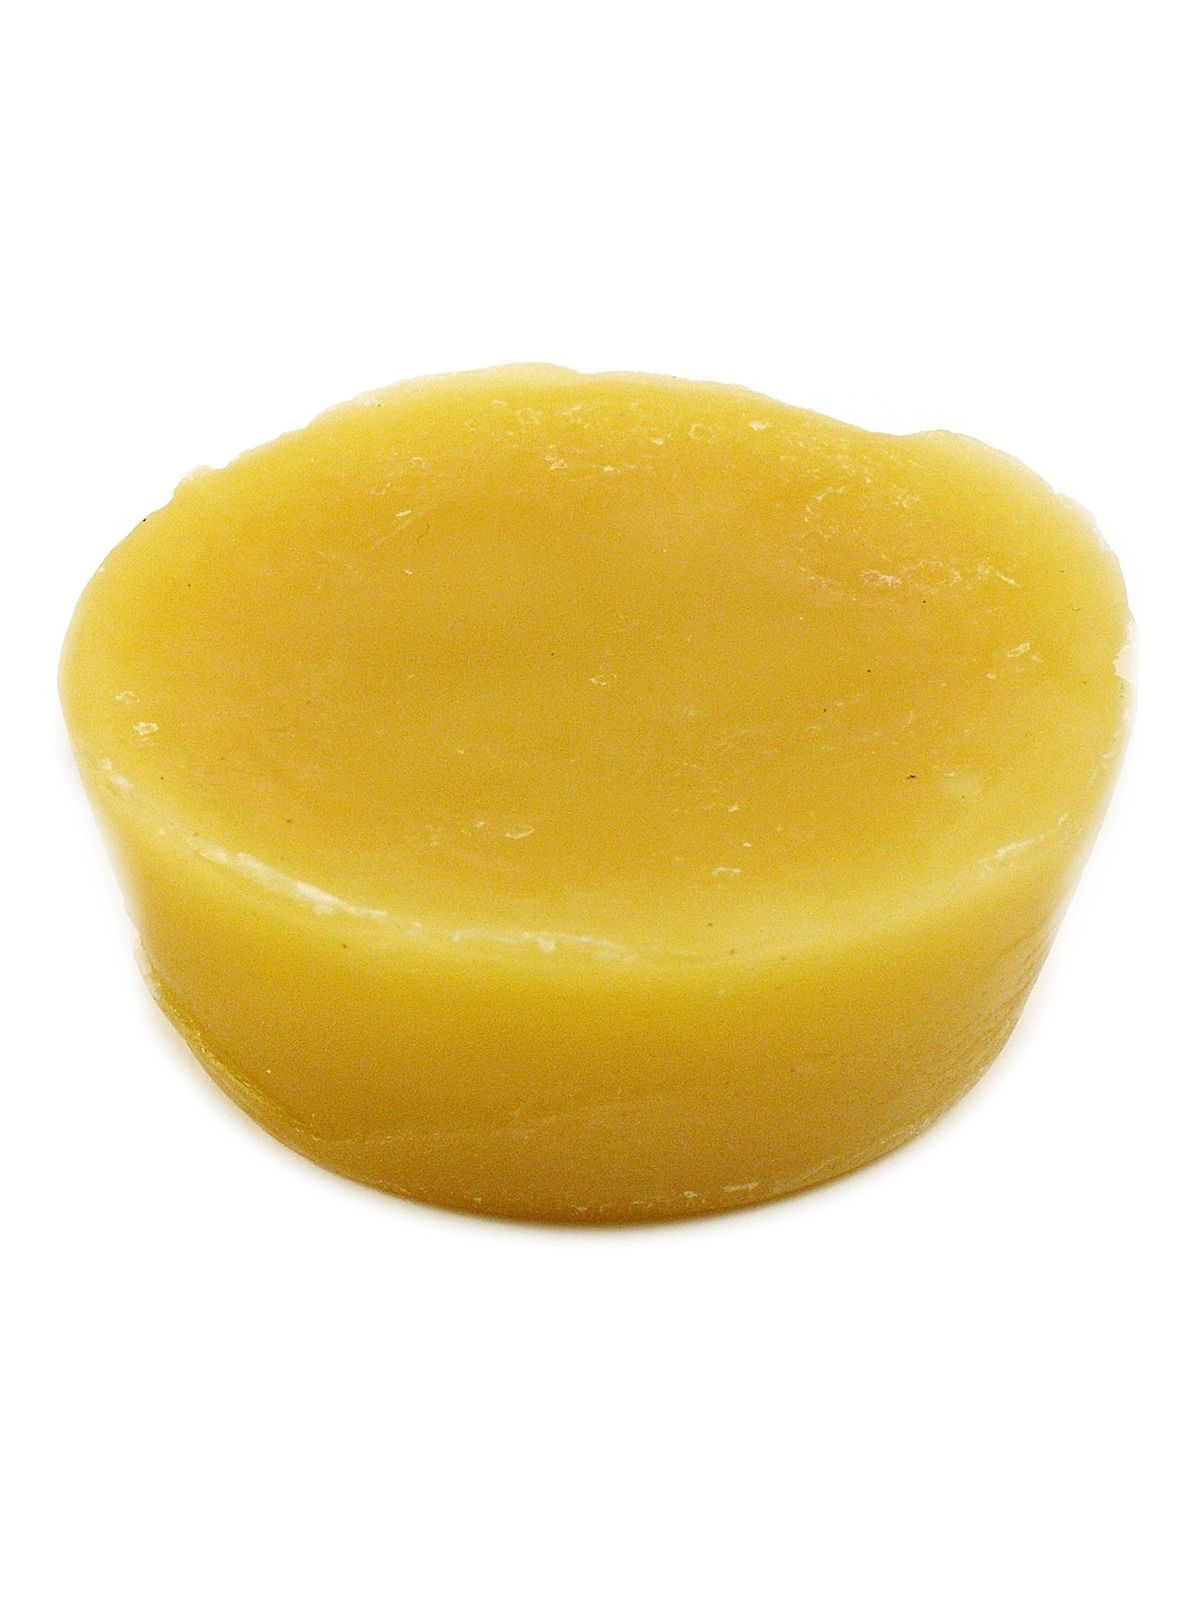 Sculpture Wax Get Your Sculpture On With This Pure Beeswax By Lundmark With Images Beeswax Pure Products Candles Crafts